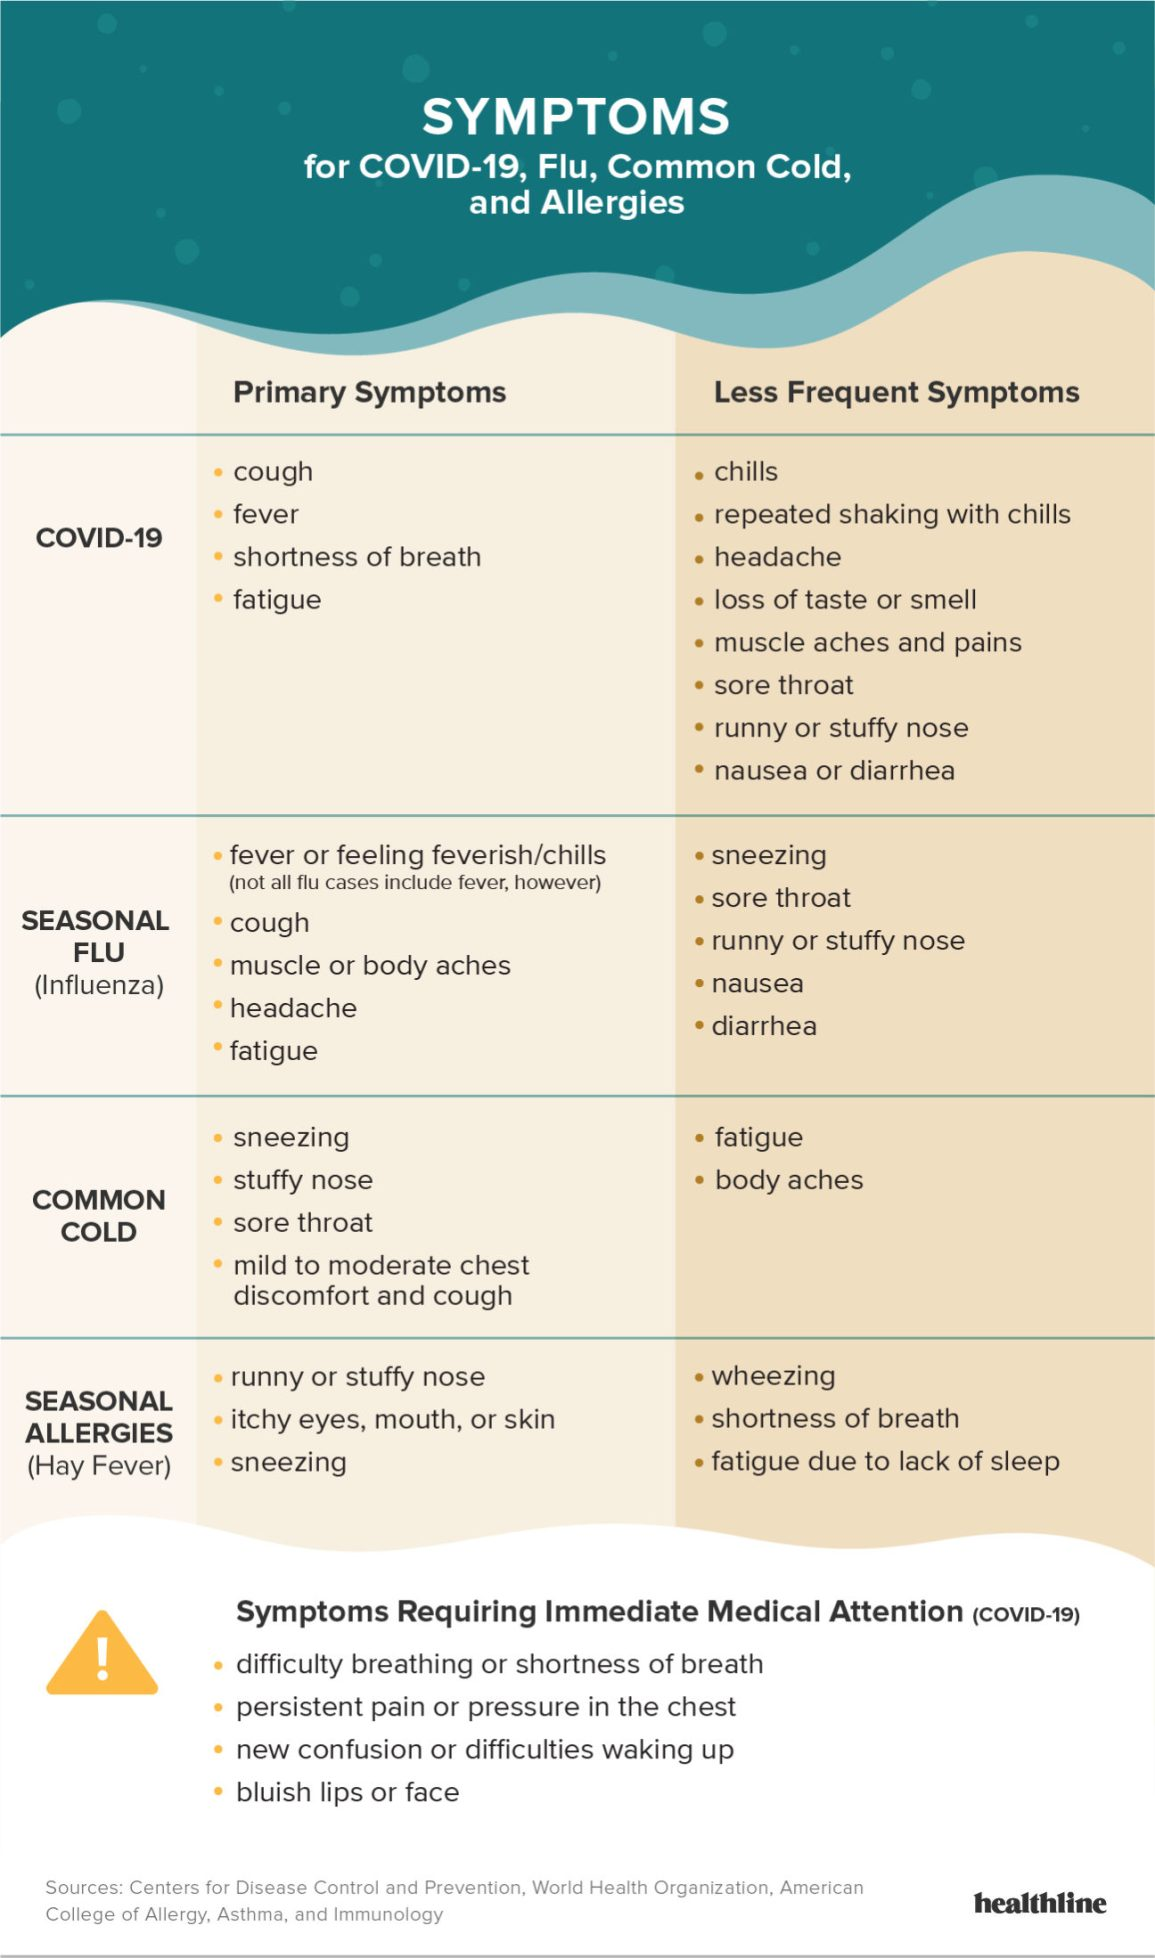 infographic comparing coronavirus symptoms to symptoms of seasonal flu, the common cold, and seasonal allergies